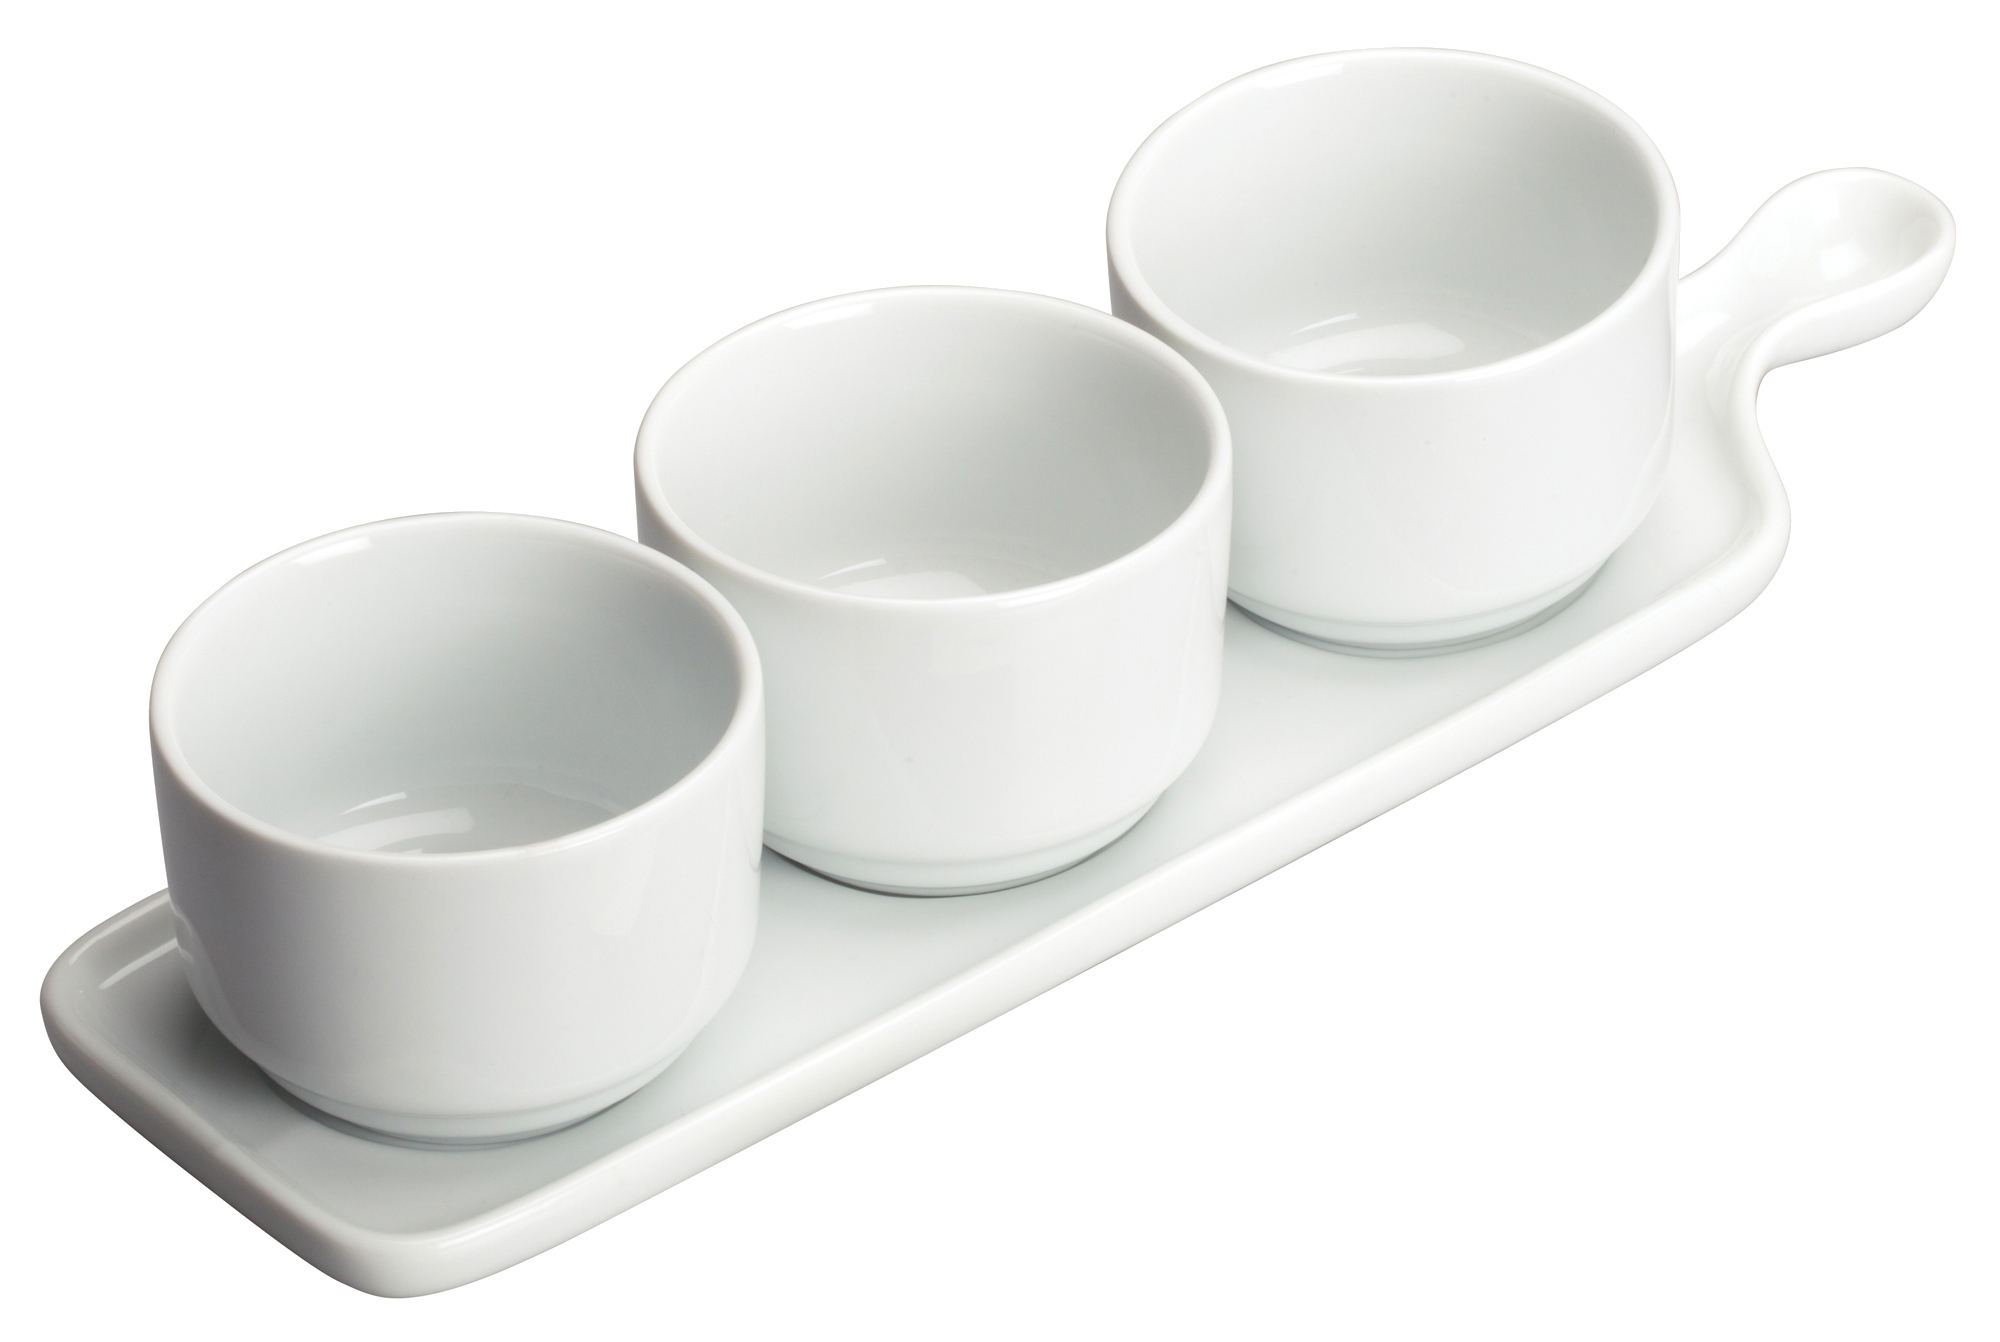 Winco WDP016-101 bowl set